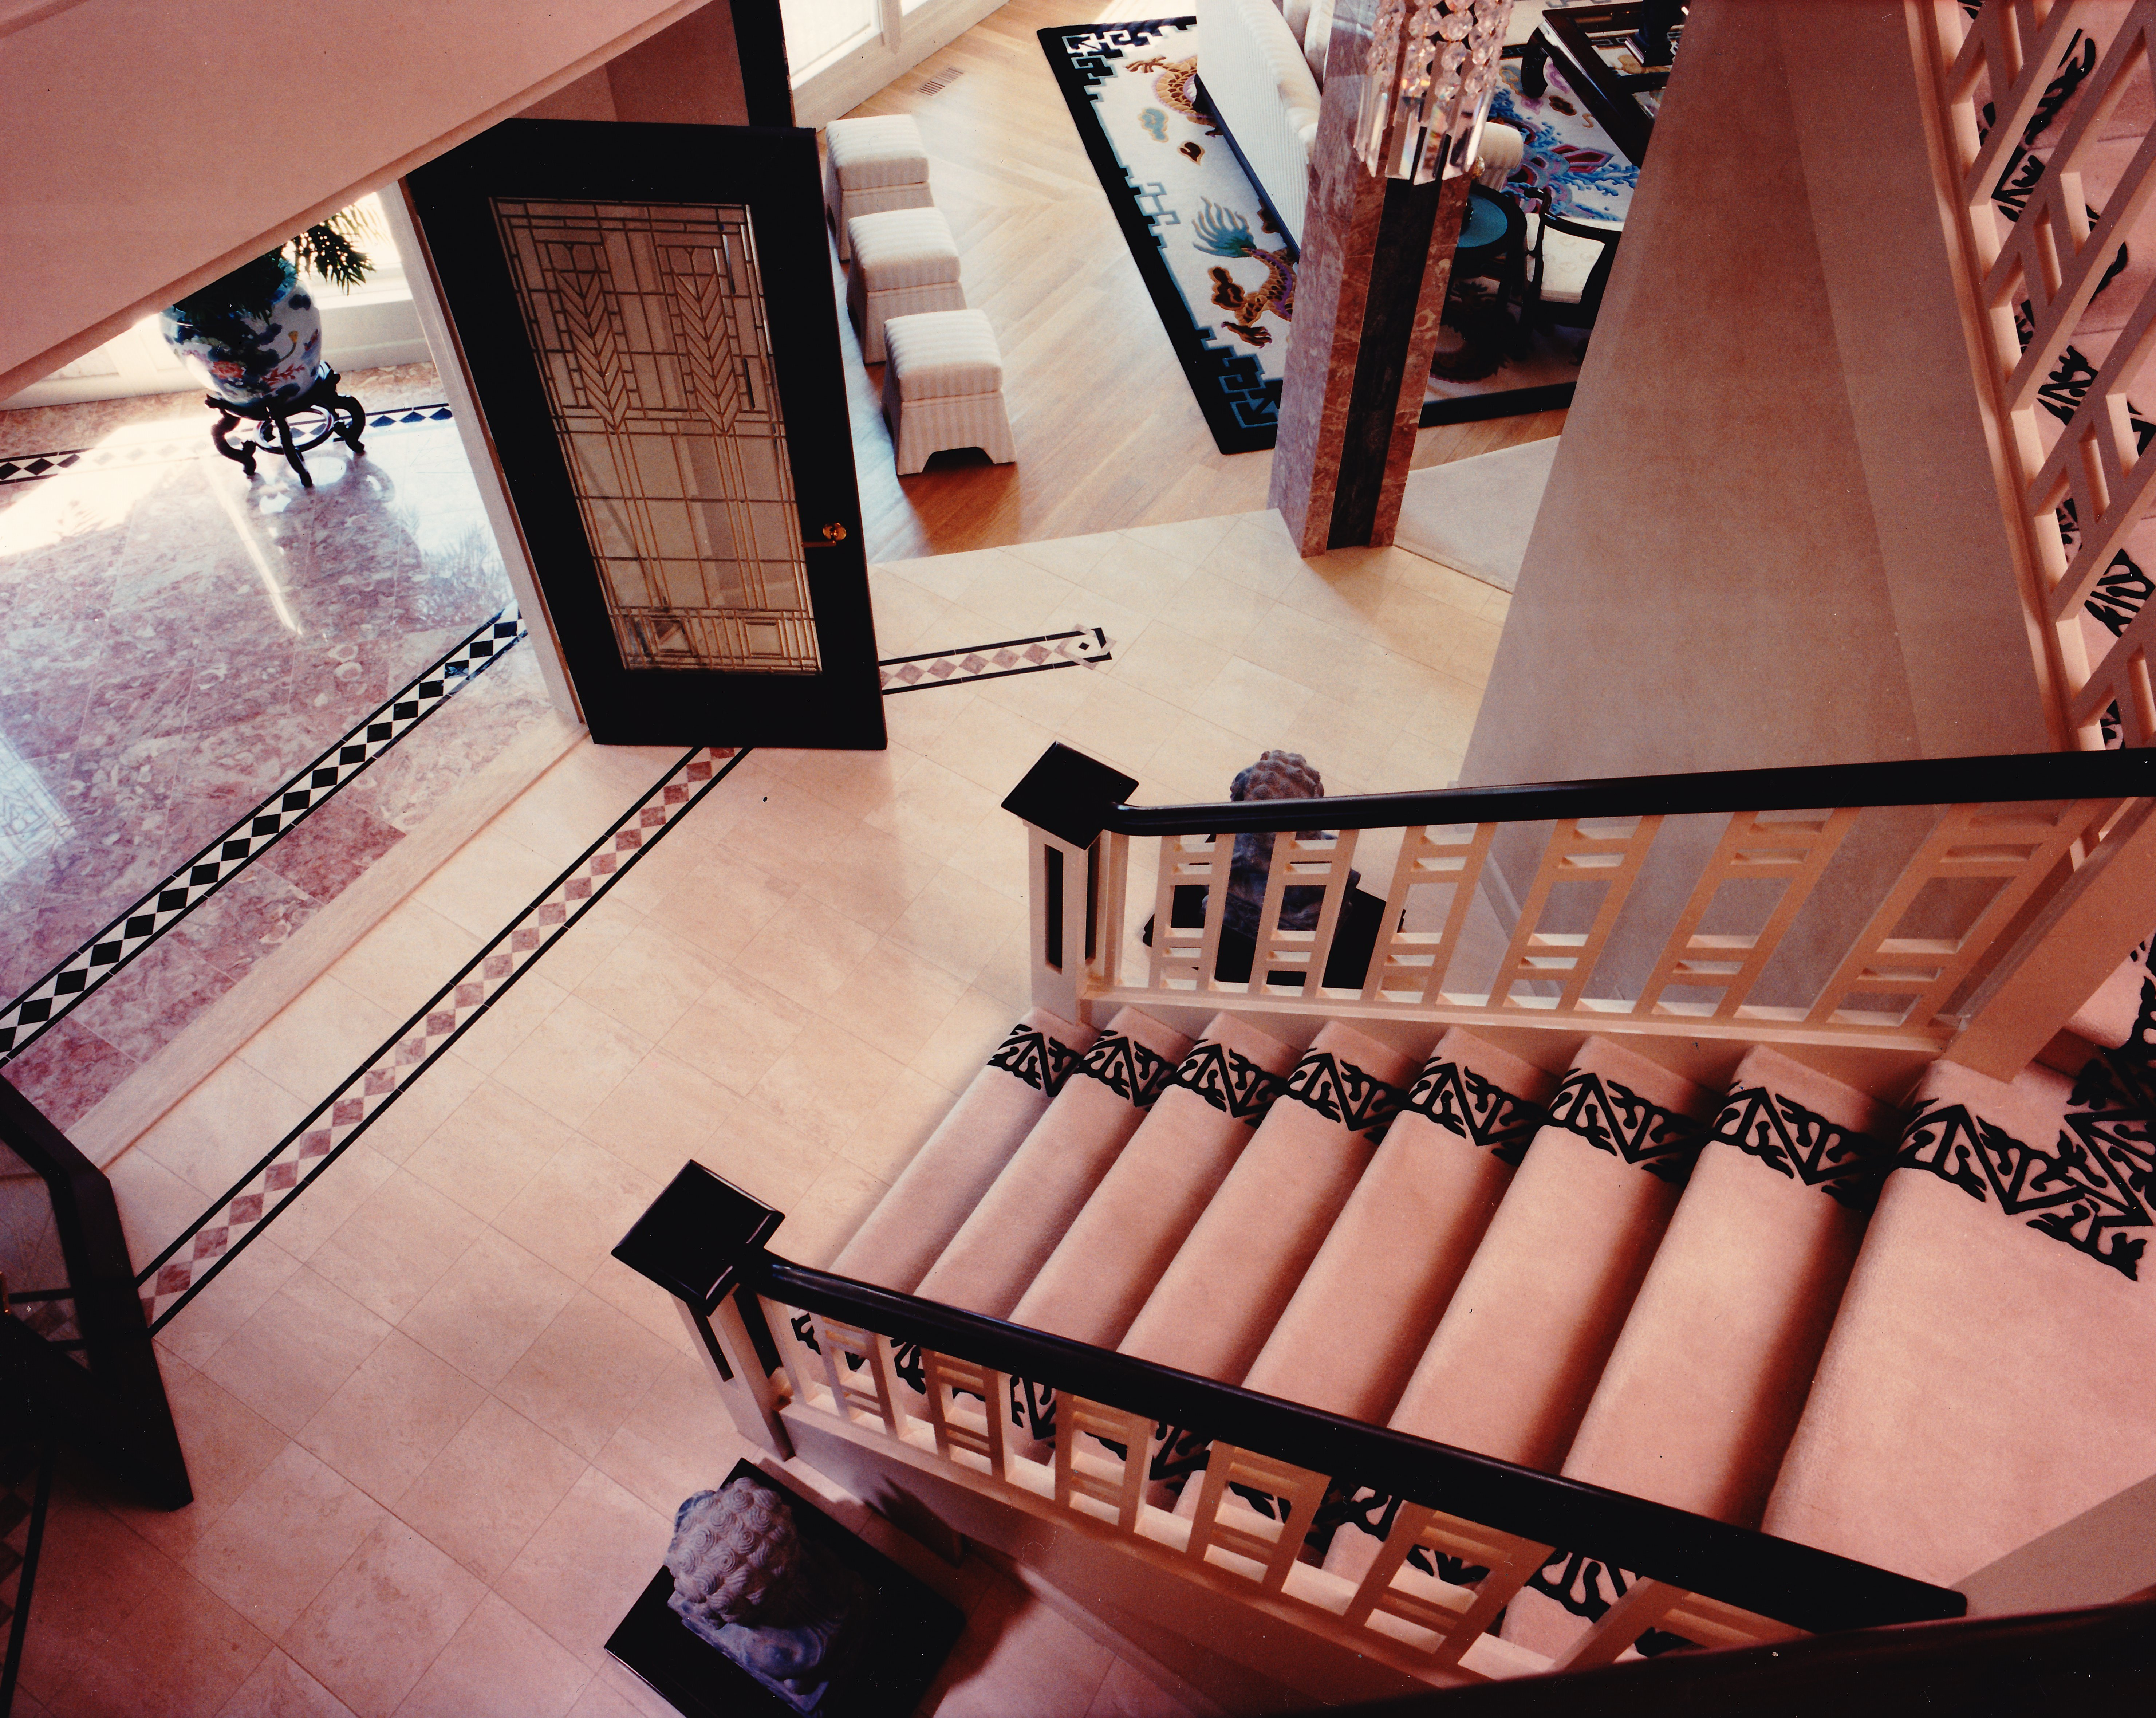 1. Phillips Stairs